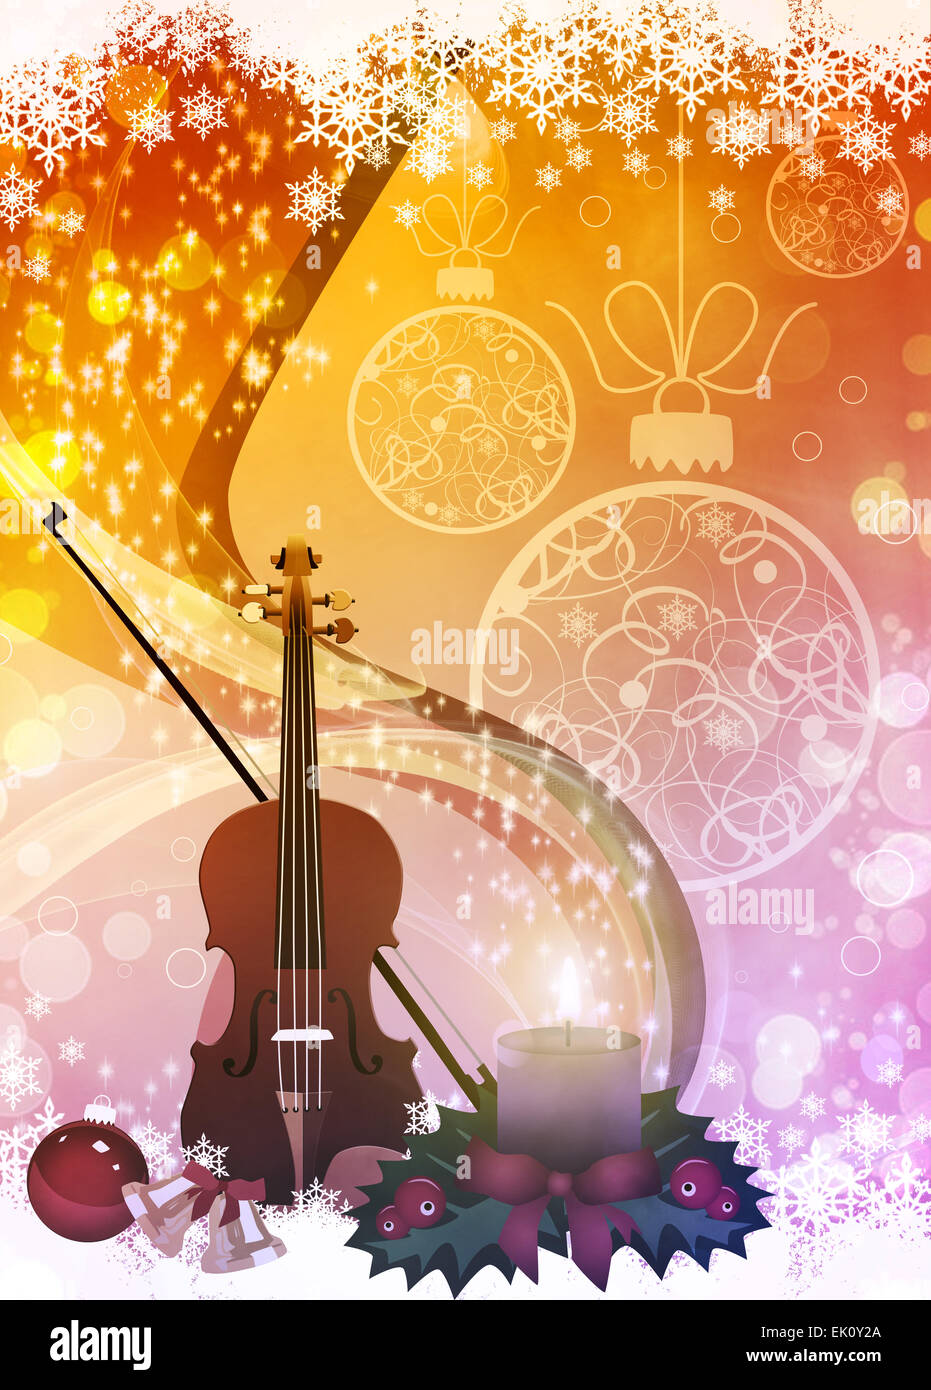 Christmas Music Background.Advent Or Christmas Music Concenrt Advert Poster Or Flyer